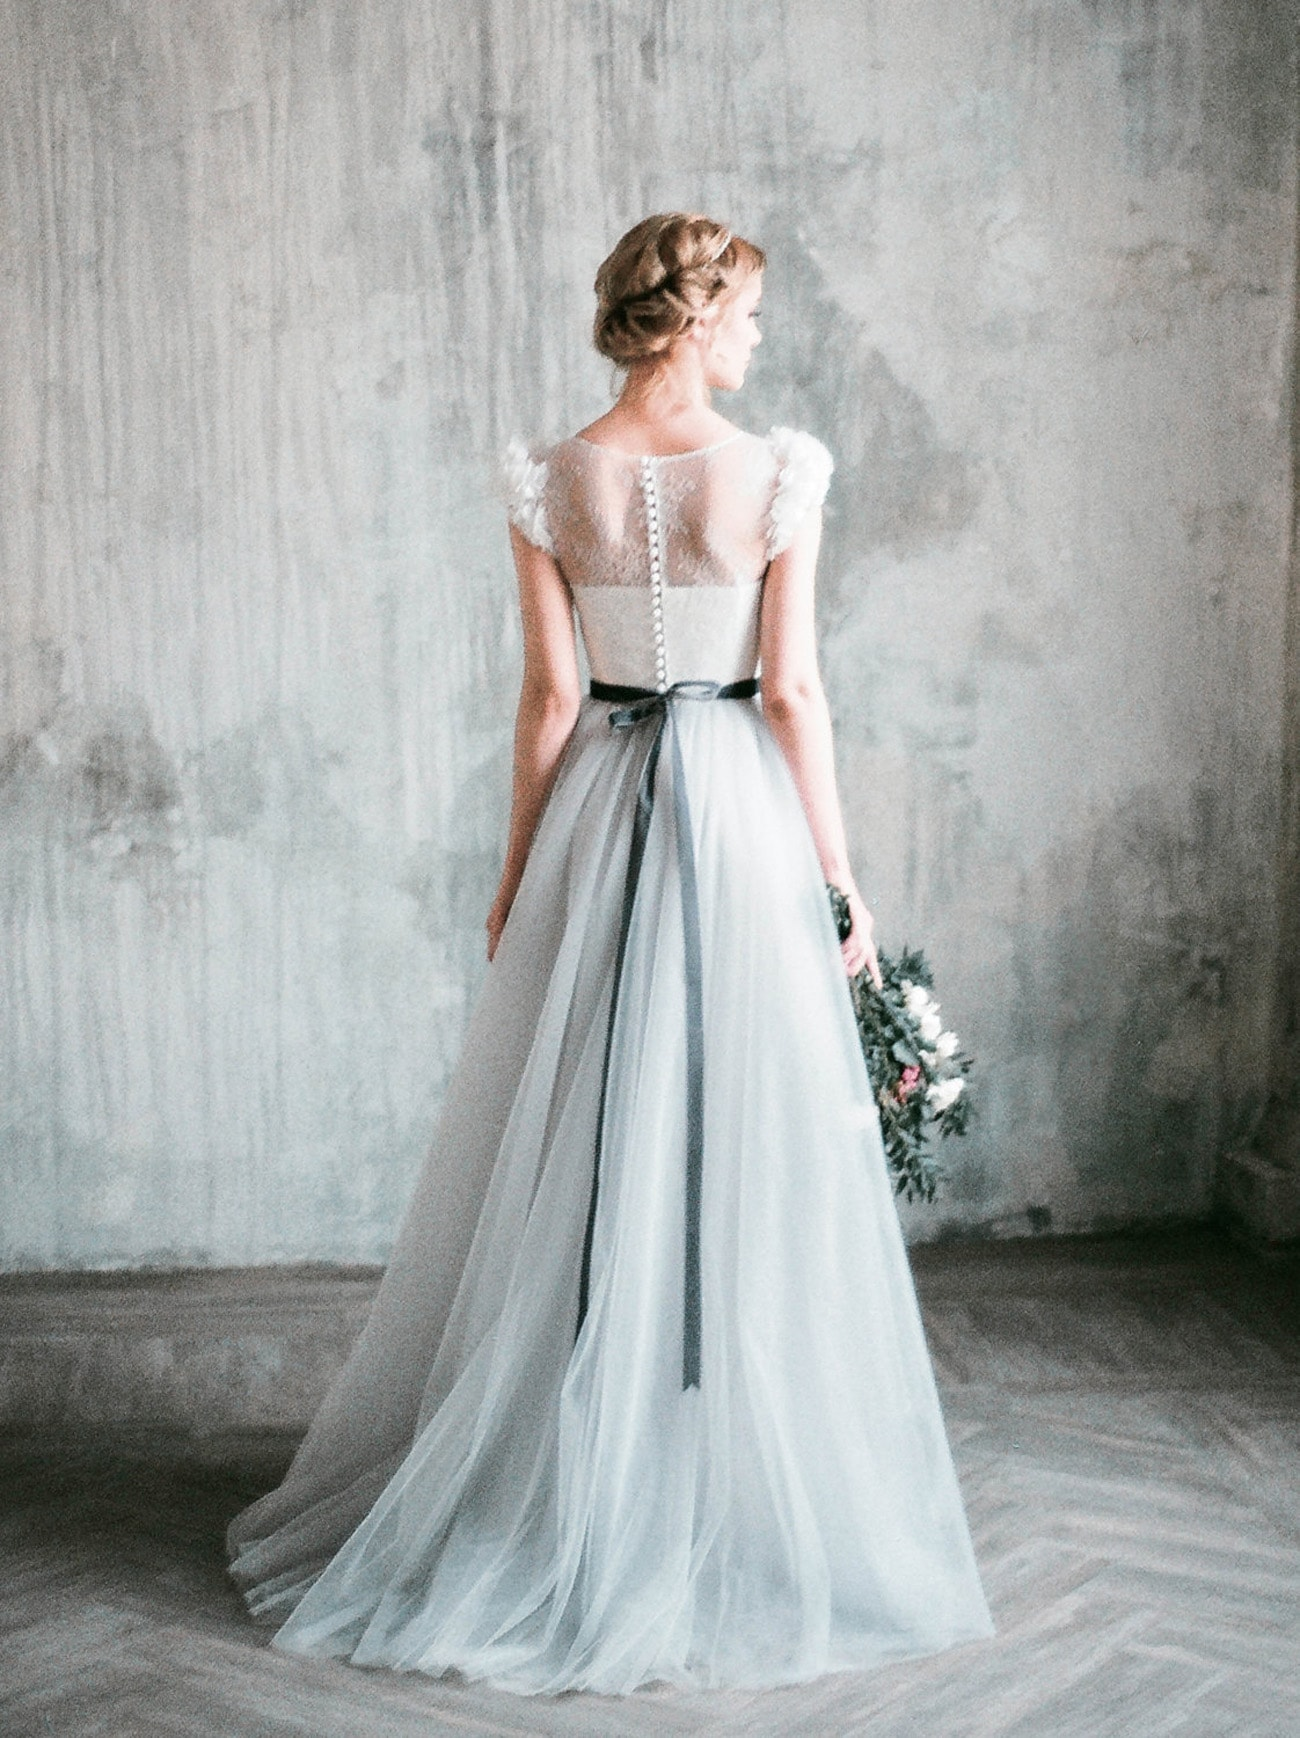 Wedding Dresses for Pear Shape | SouthBound Bride